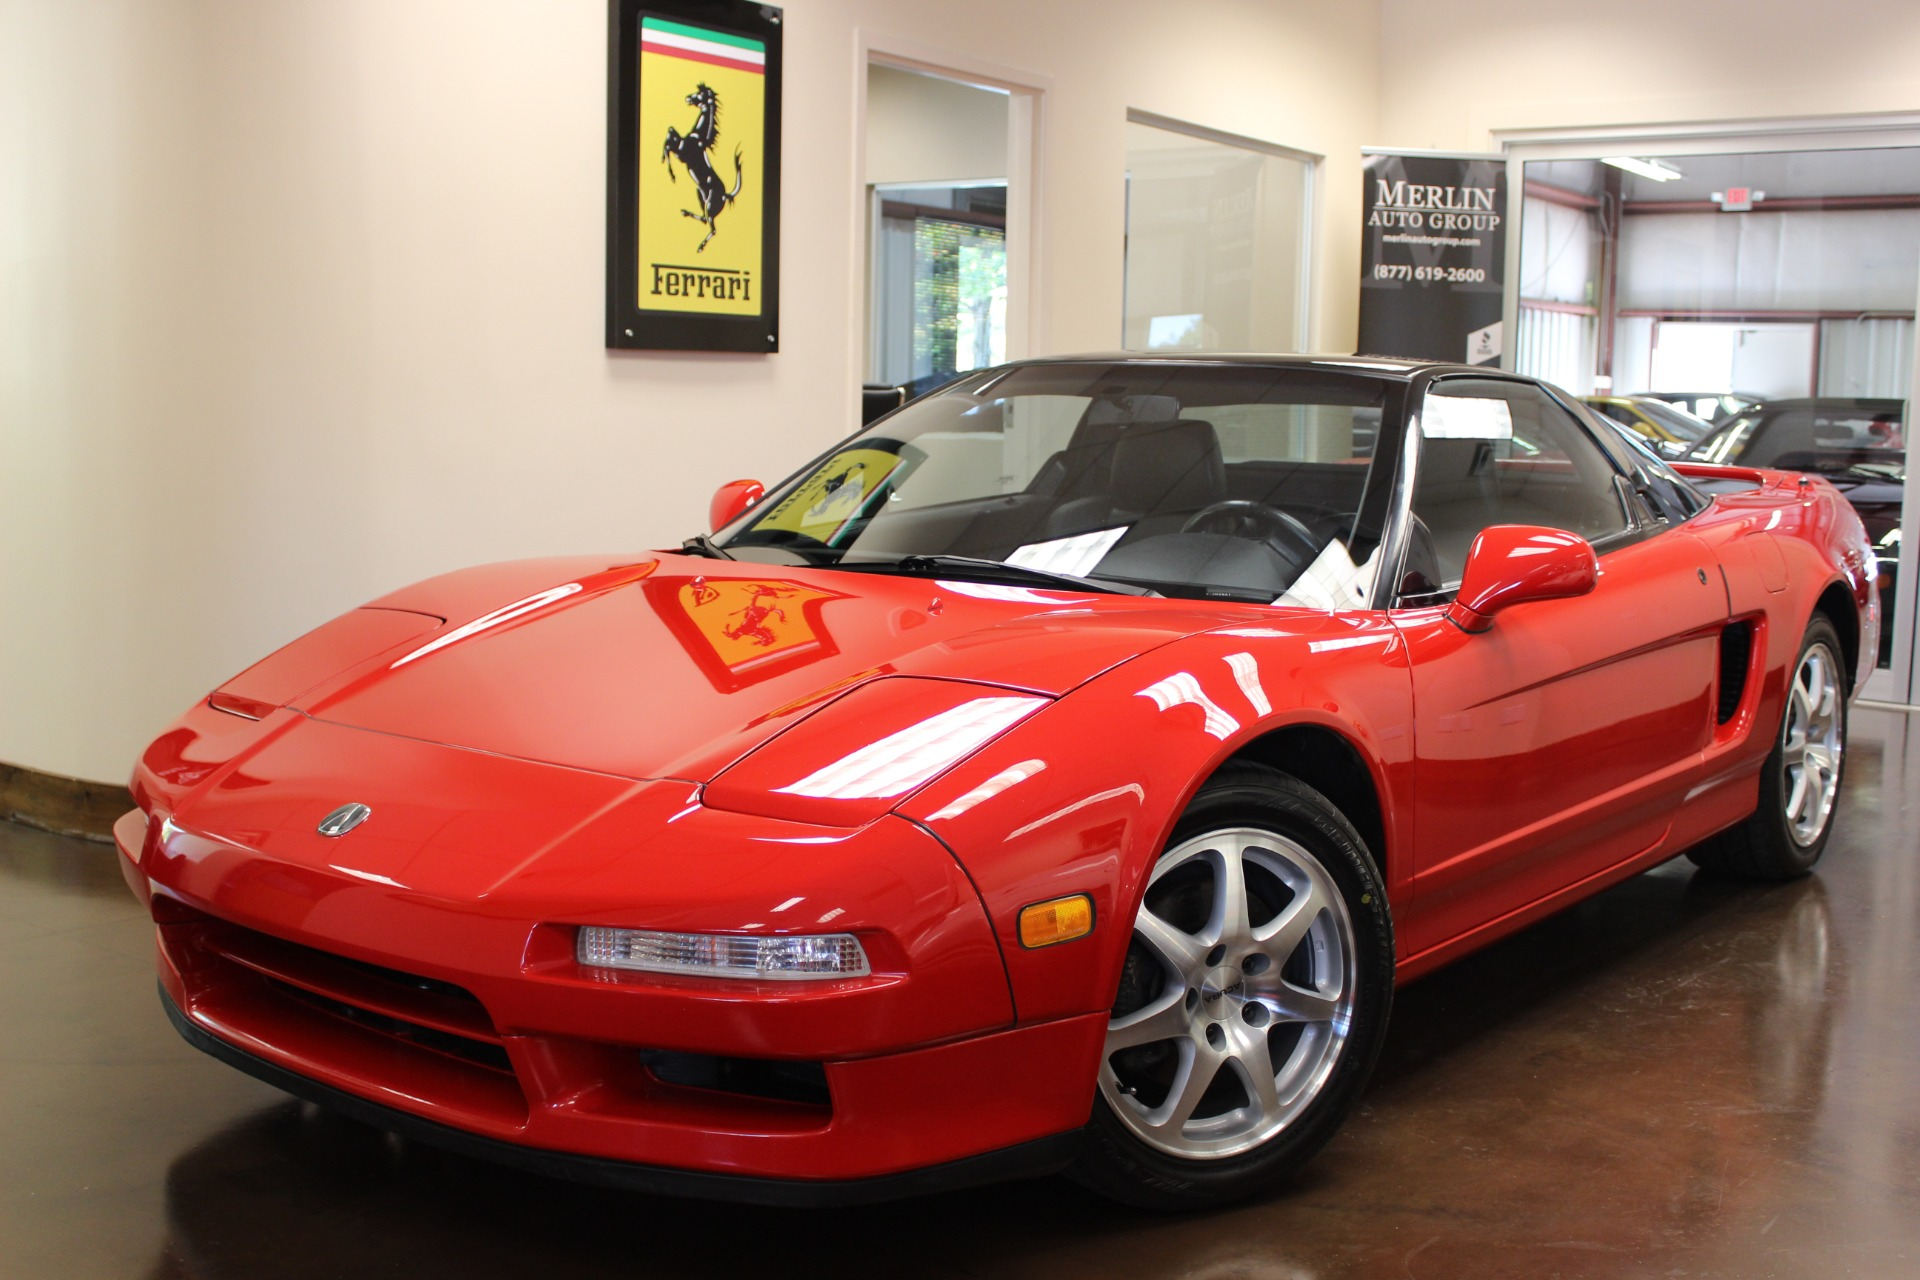 used 1992 acura nsx red coupe v6 3l m for sale acura nsx 1992 for sale in local pick up only. Black Bedroom Furniture Sets. Home Design Ideas